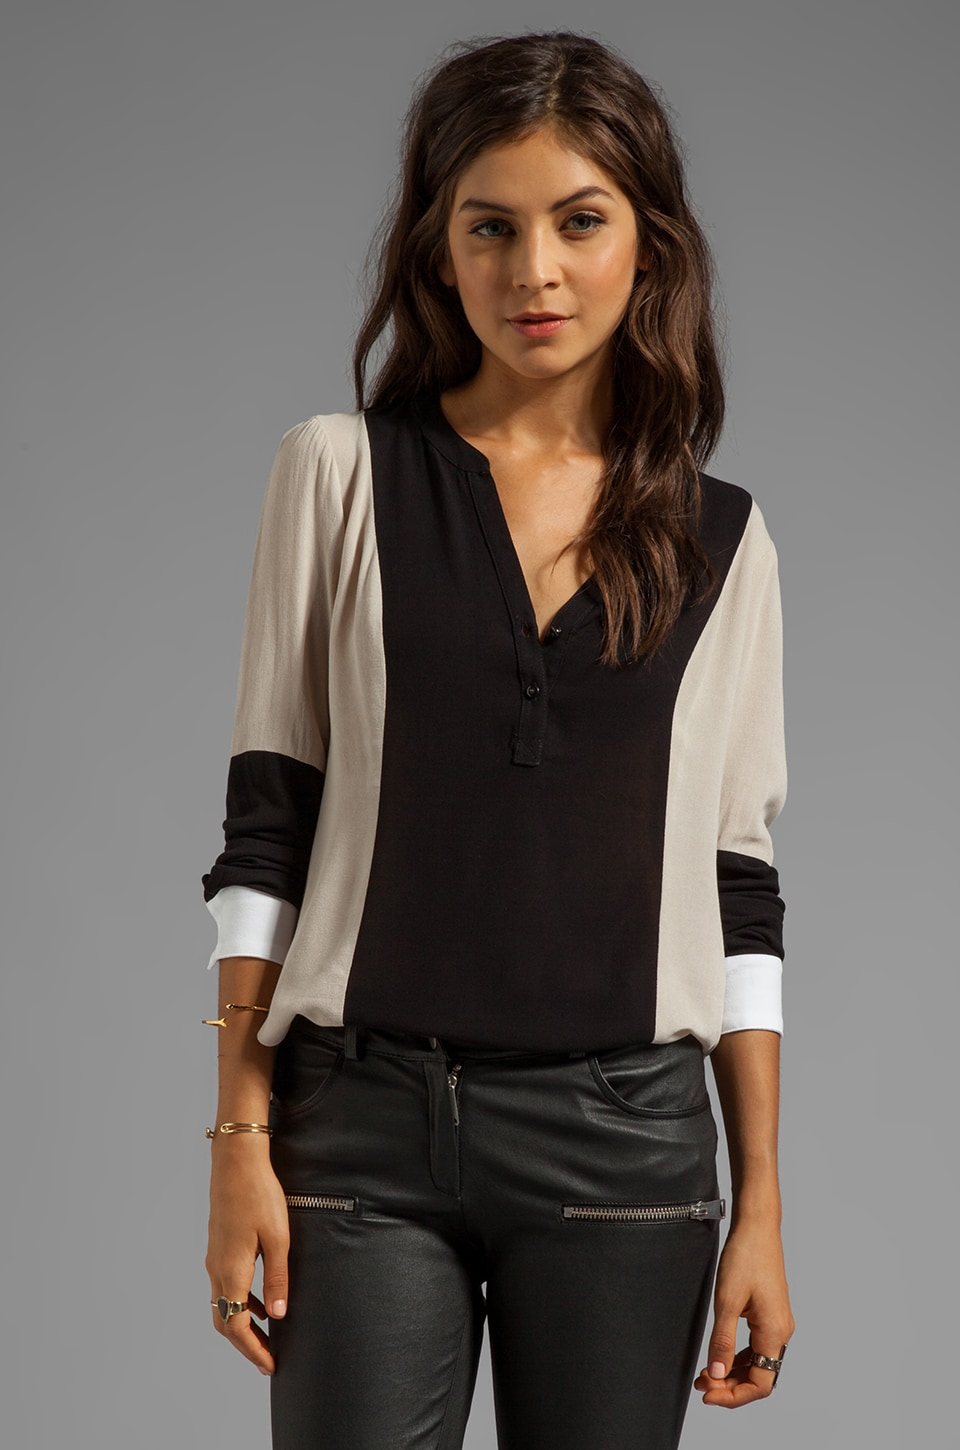 Ella Moss Stella Long Sleeve Top in Black